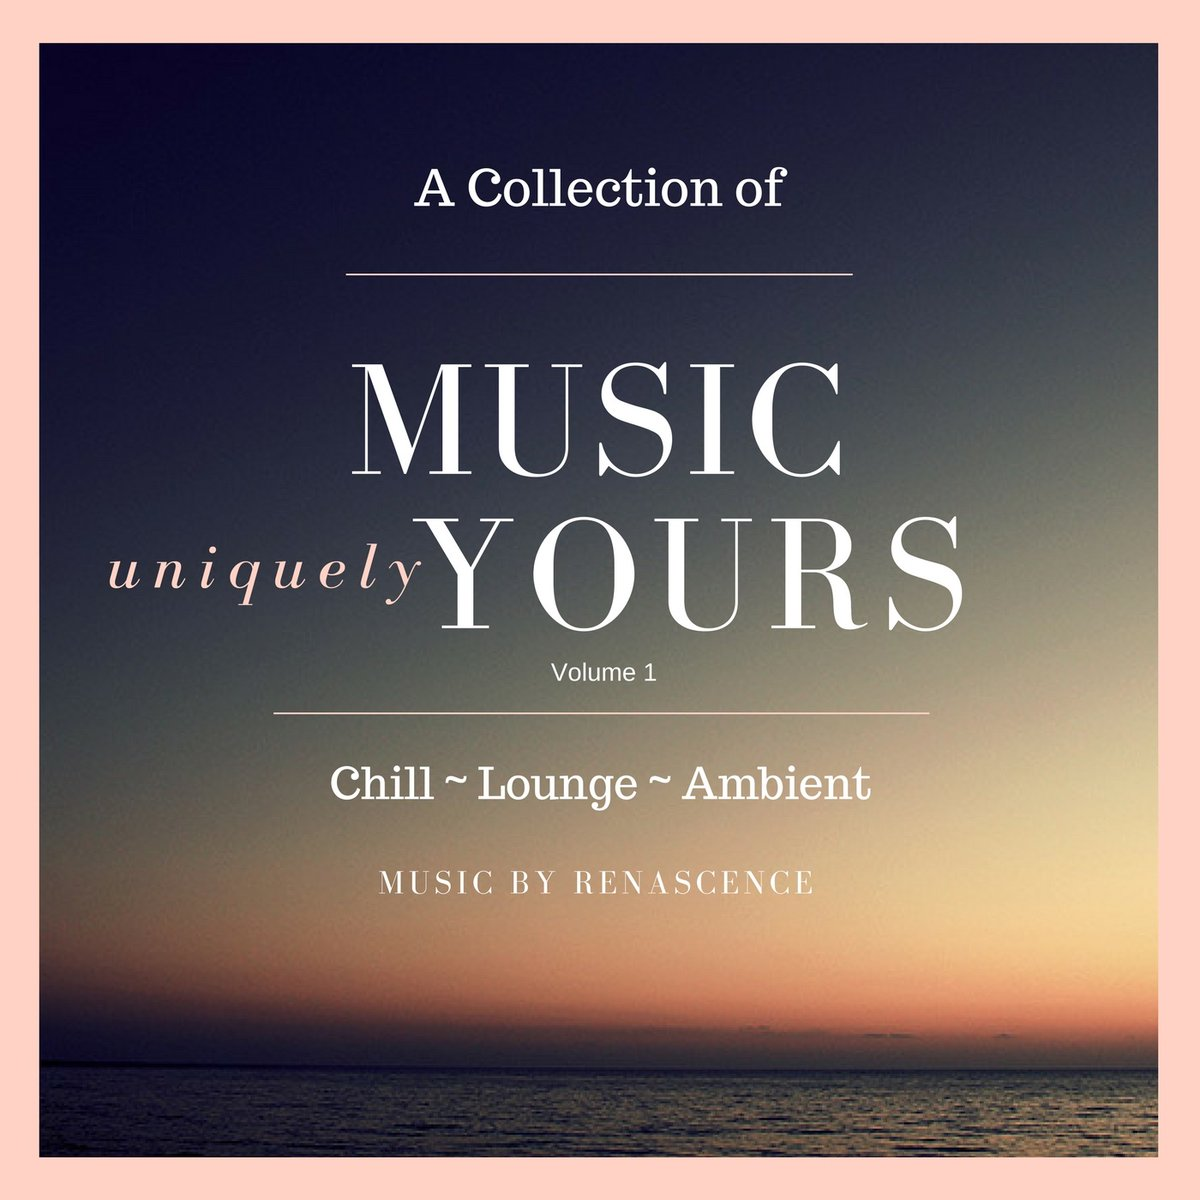 Electronic musical terrain of the ambient-chill variety, often infusing his passages with #Balearic new age overtones. https://t.co/RKy0zdO0uT  chill #nowplaying #newmusic https://t.co/bVB6M0GldH